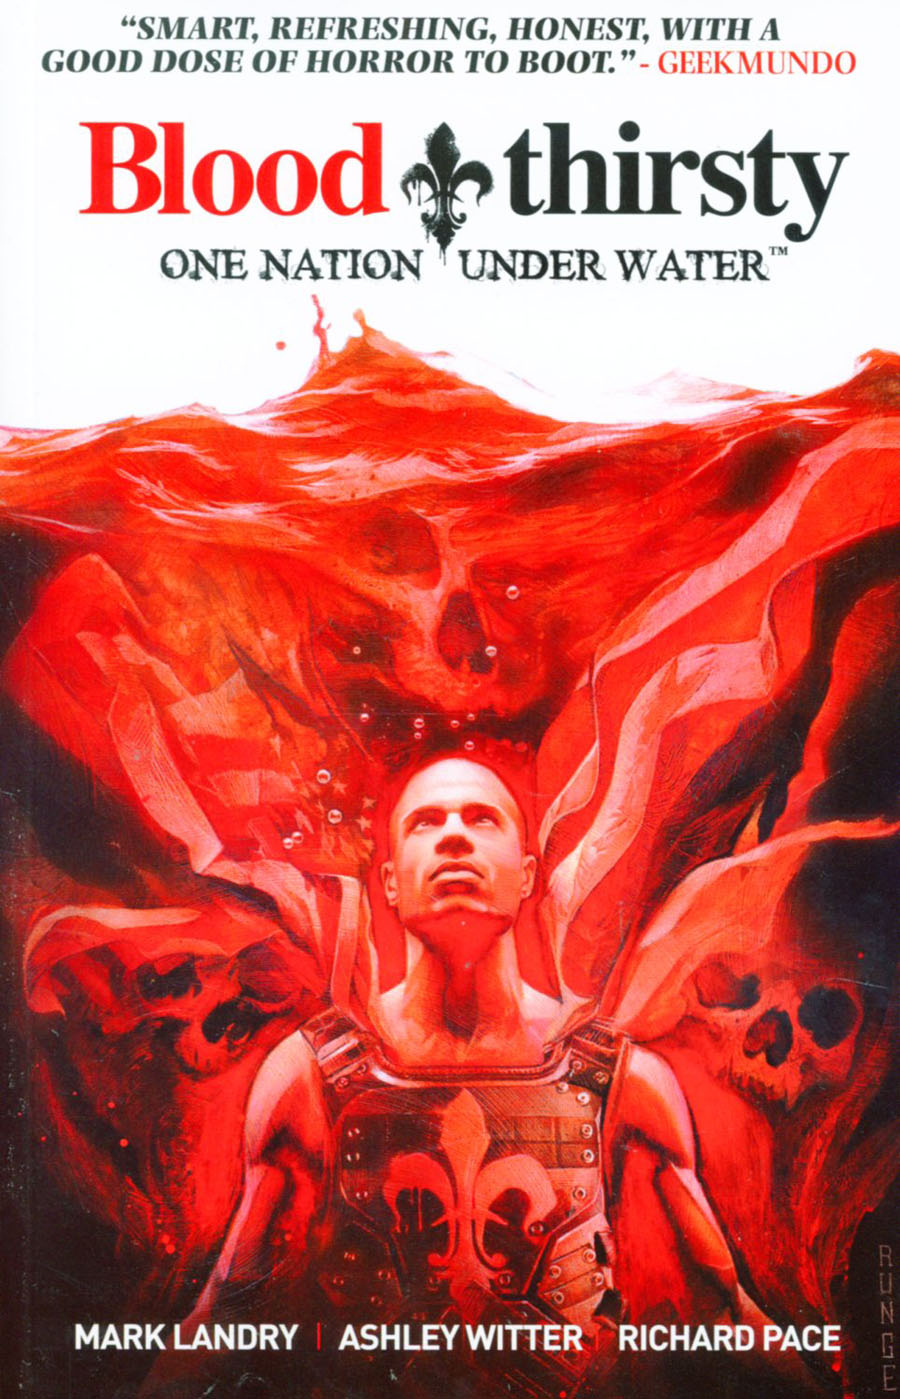 Bloodthirsty One Nation Under Water TP